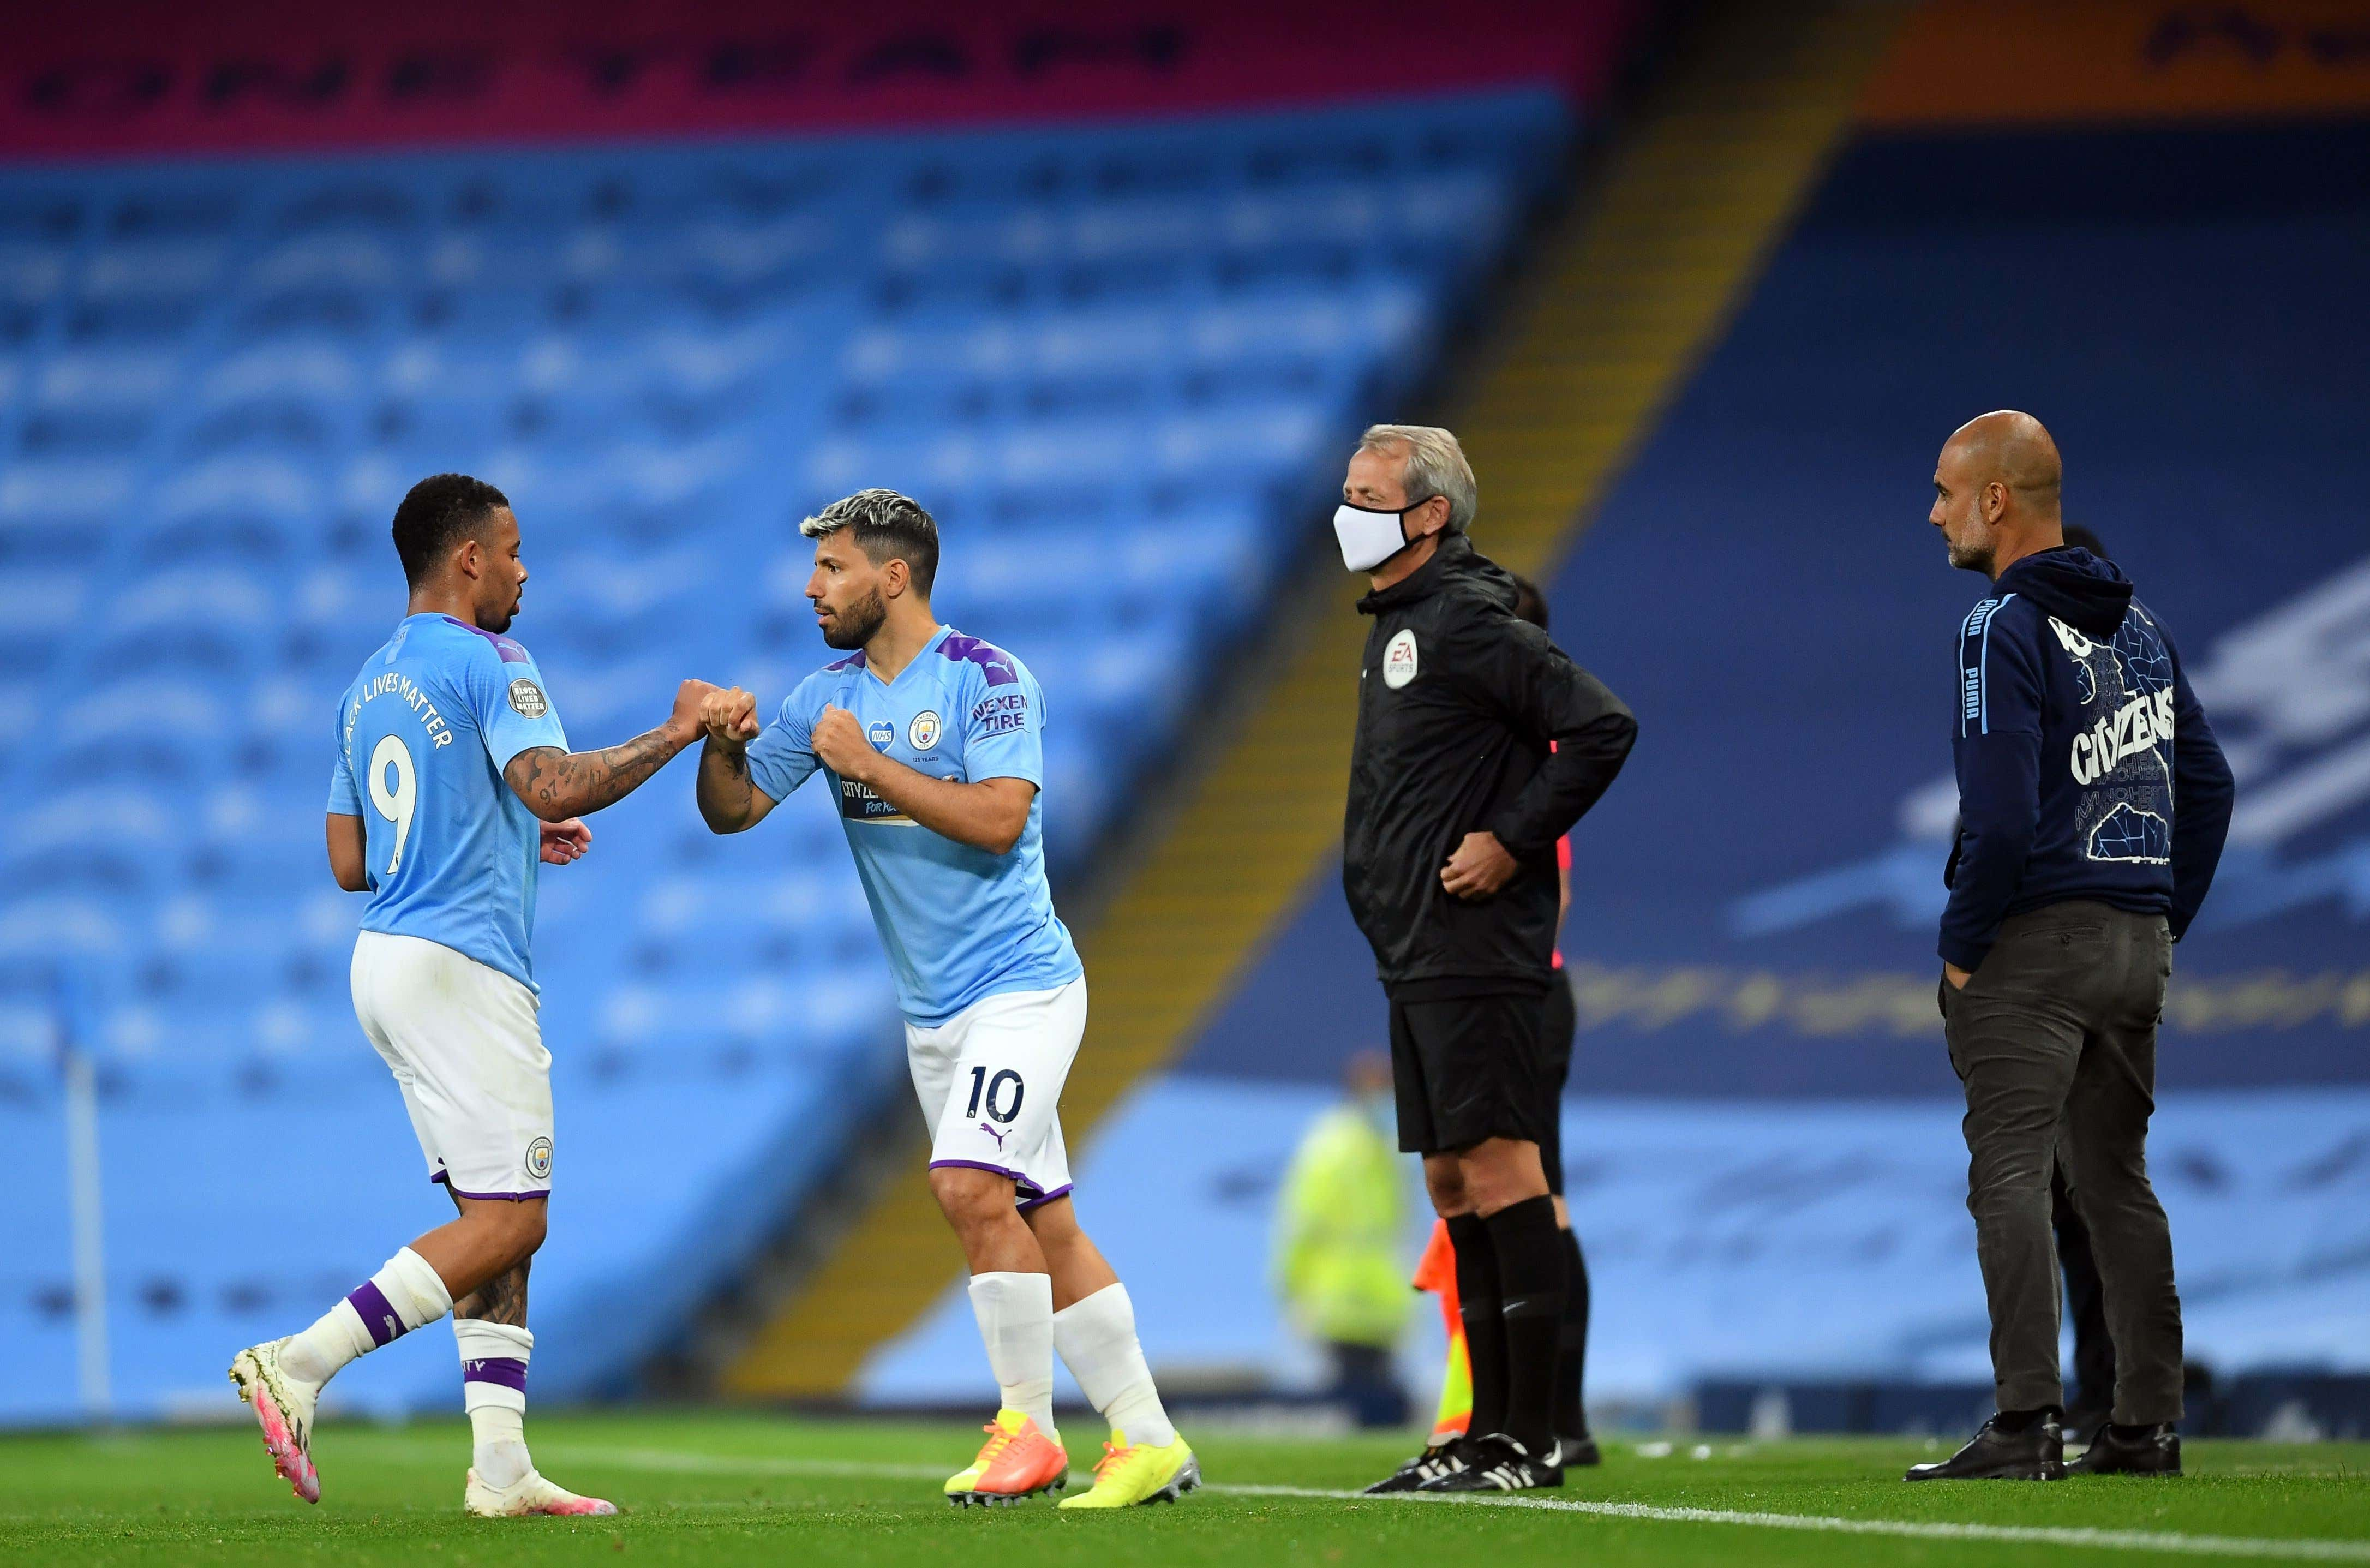 Gabriel Jesus (L) of Manchester City leaves the pitch for his teammate Sergio Aguero (2-L) as Manchester City manager Pep Guardiola (R) looks on during the English Premier League soccer match between Manchester City and Arsenal FC at Etihad stadium in Manchester, Britain, 17 June 2020.